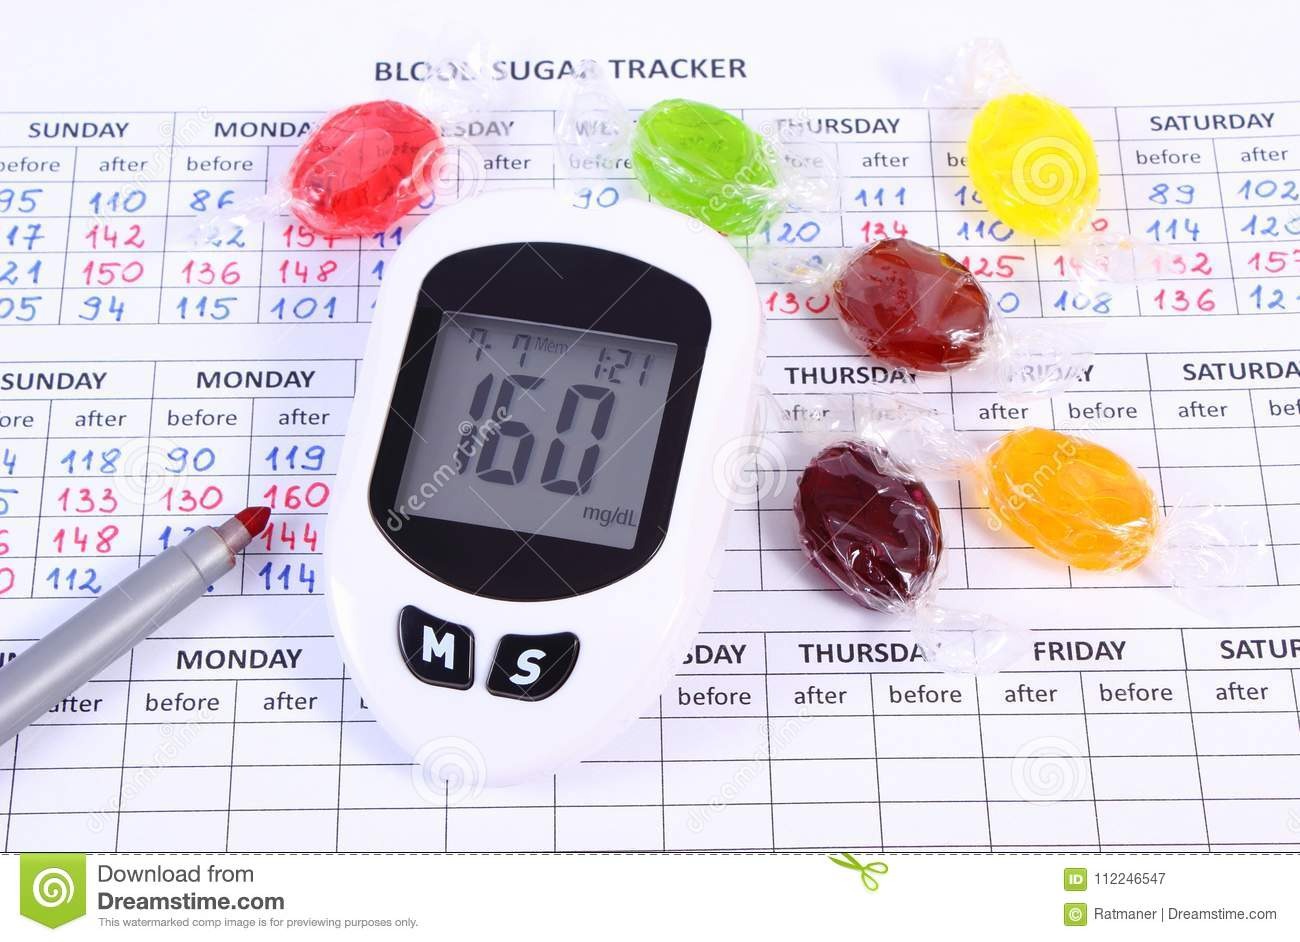 Glucometer for checking sugar level, pen and candies on medical form